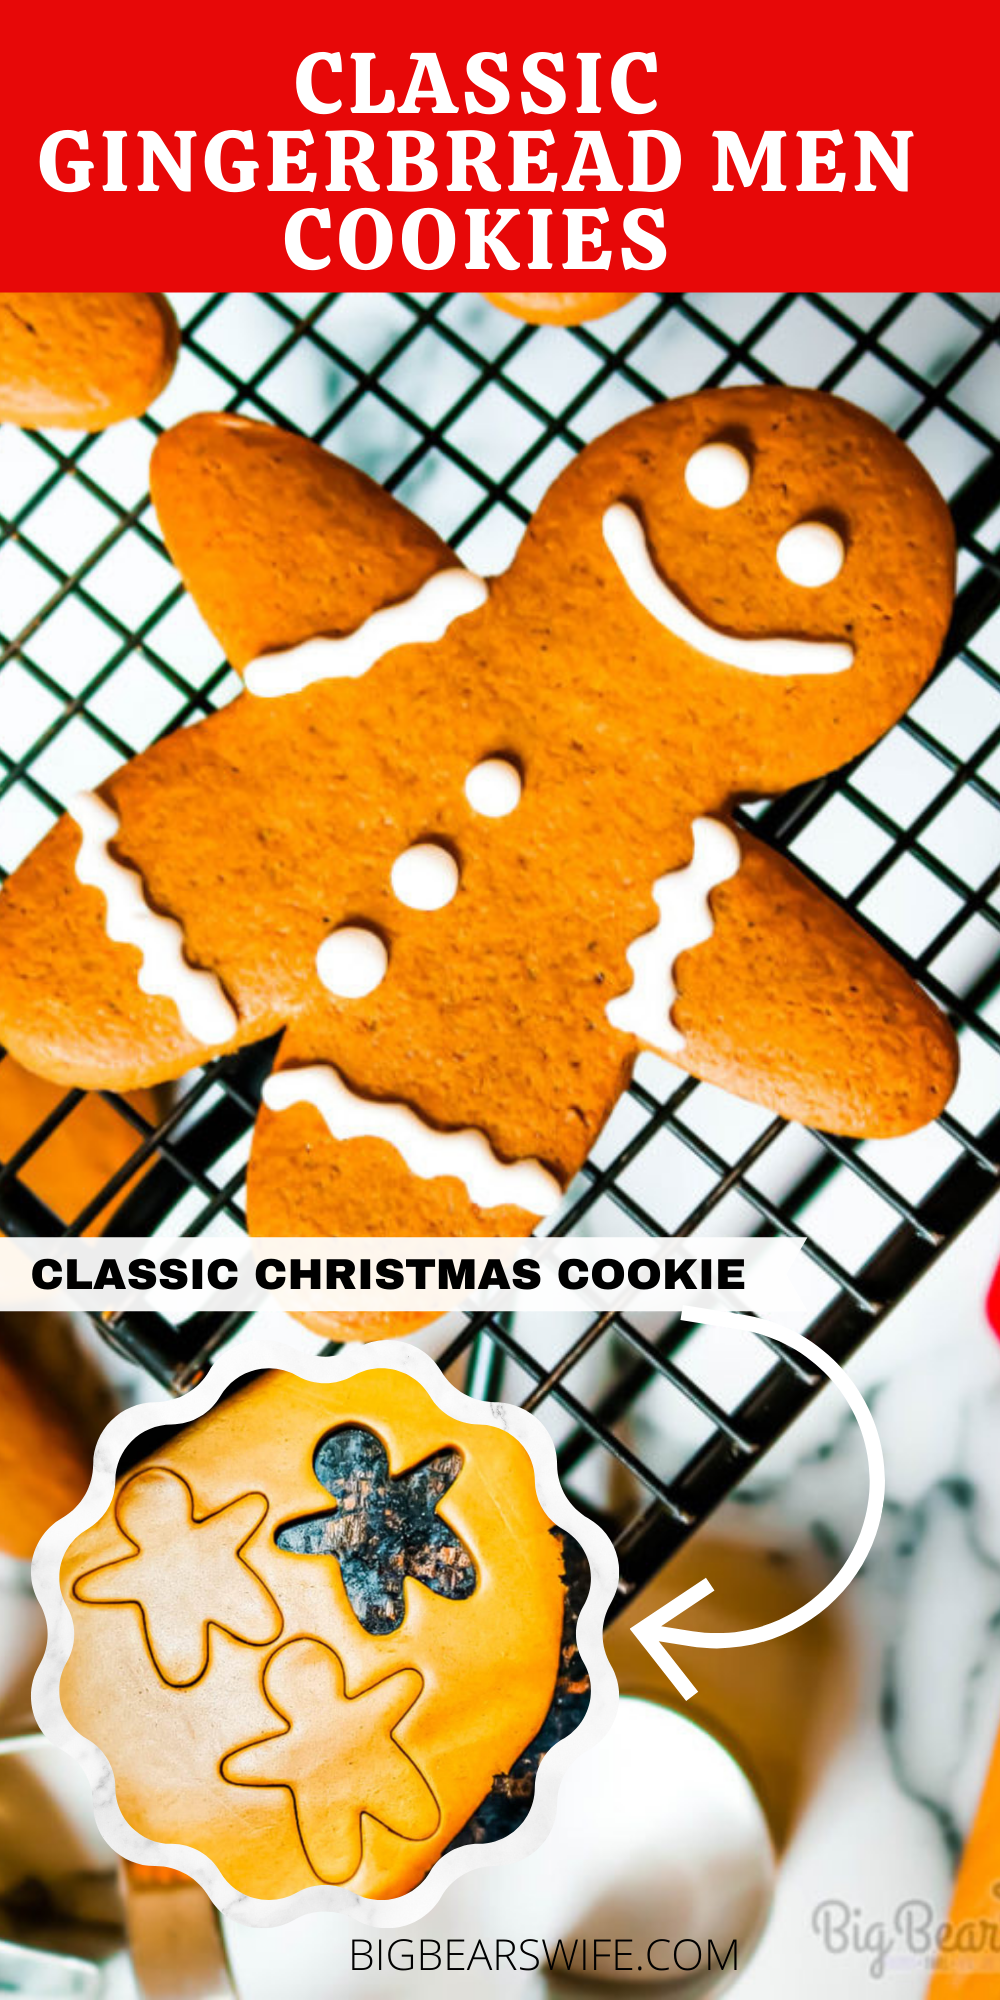 Classic Gingerbread Men Cookies are so perfect for the holidays! This gingerbread cookie dough holds up for perfectly for gingerbread cutout cookies or can be baked longer to create gingerbread men cookie ornaments for the Christmas Tree!